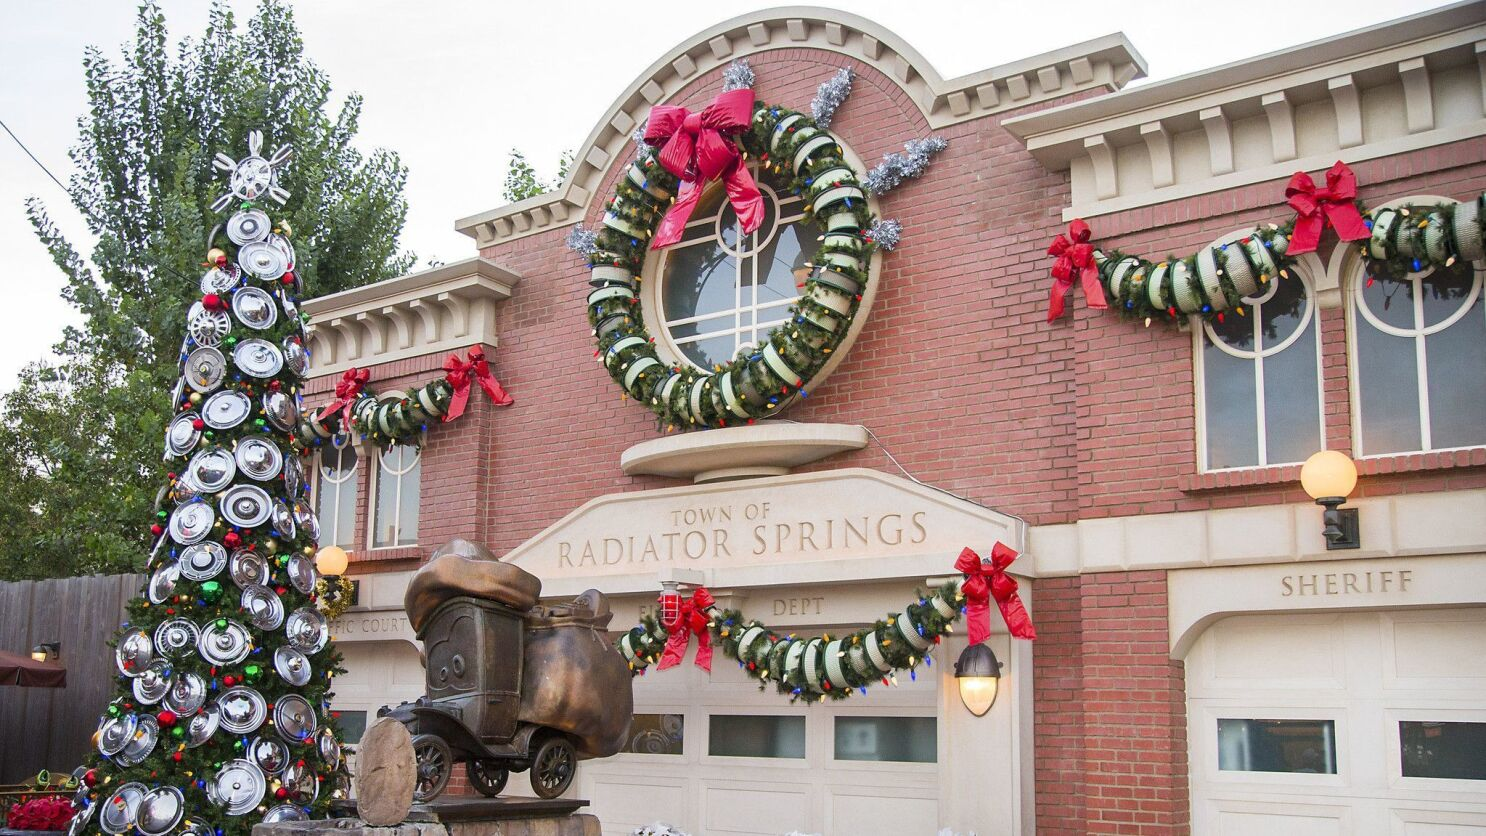 Visit Cars Land Christmas to enjoy holiday decorations made